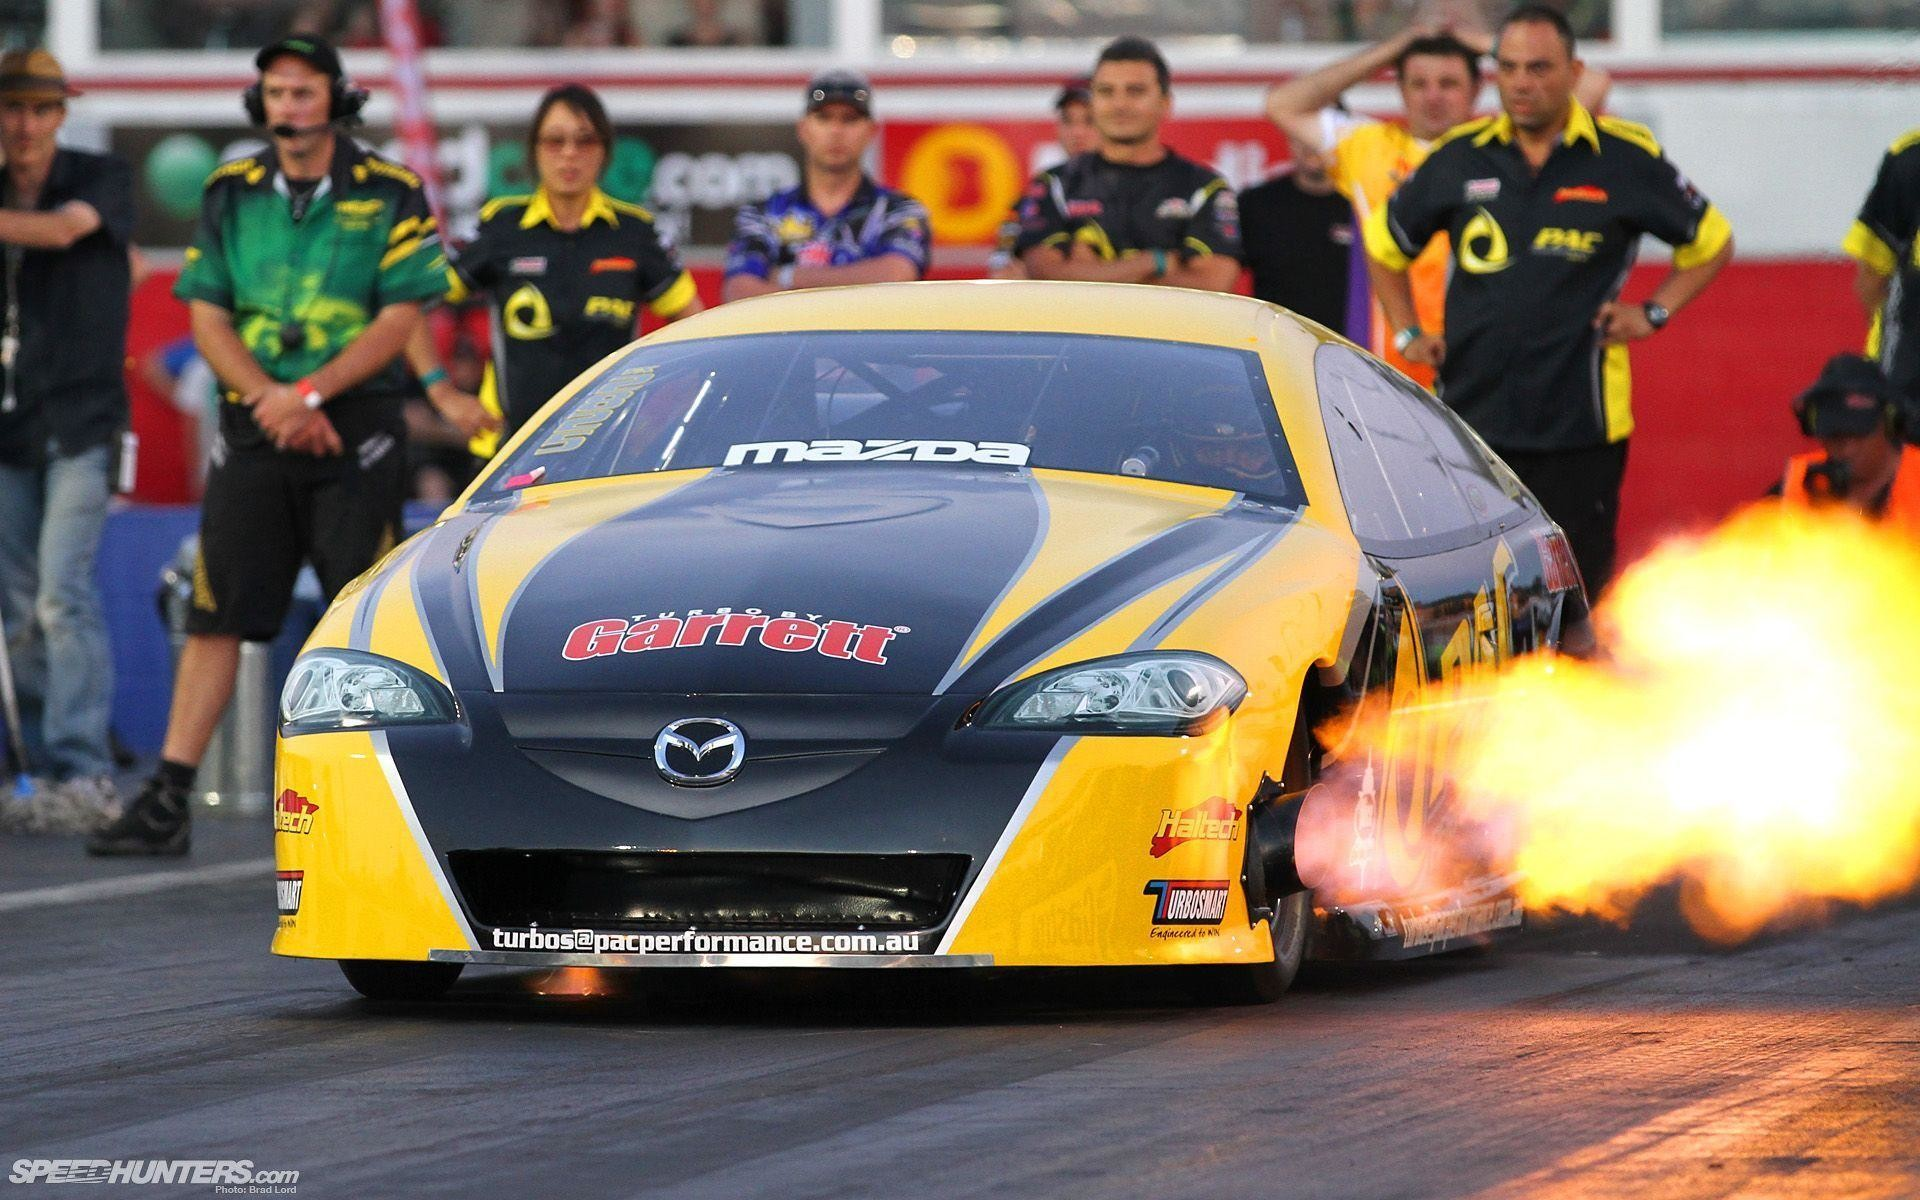 Res: 1920x1200, 93 Drag Racing Wallpapers | Drag Racing Backgrounds